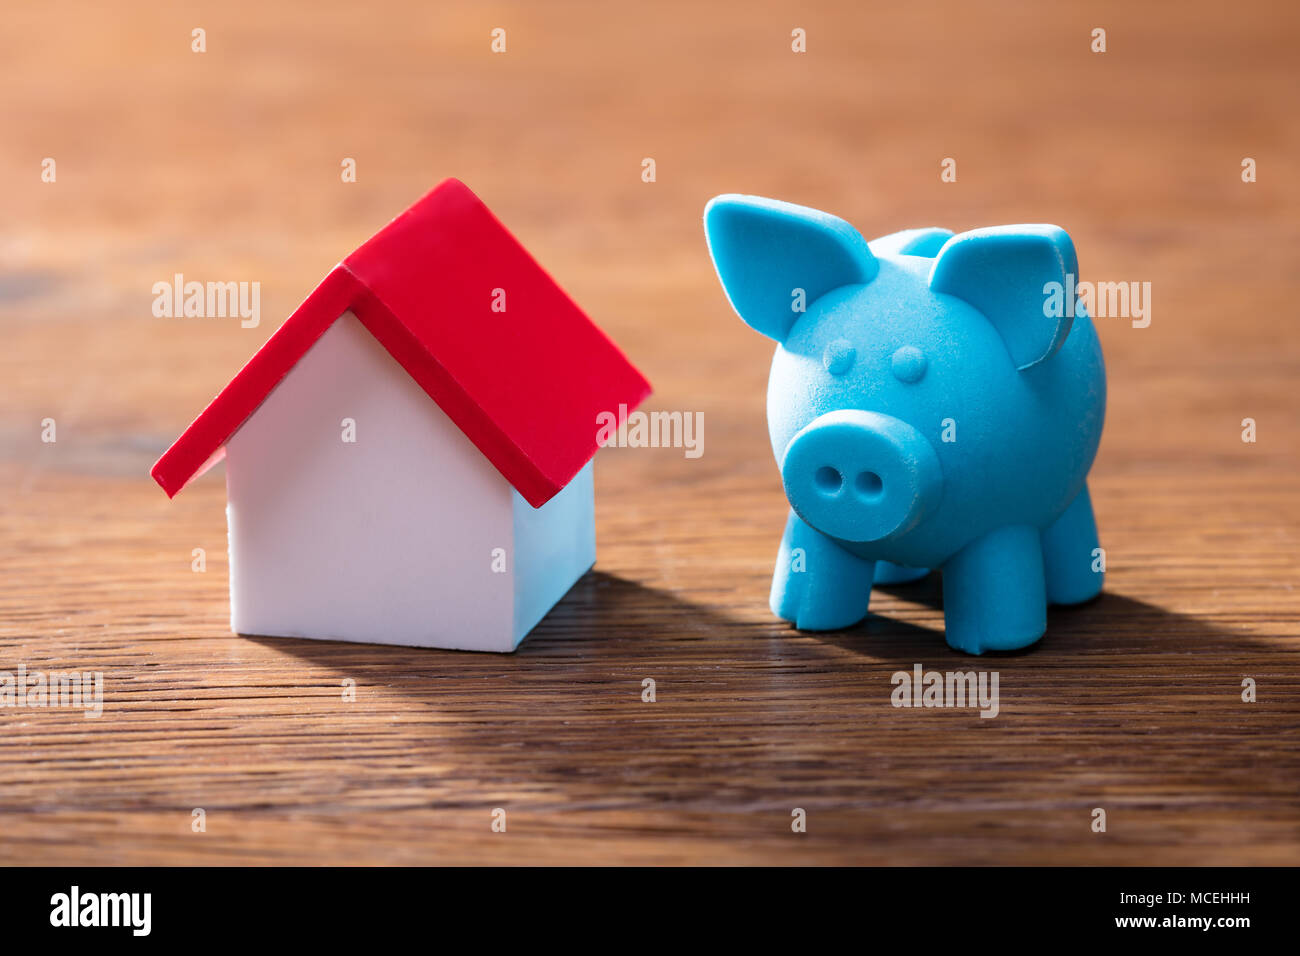 Close-up Of House Model And Blue Piggybank On The Wooden Table - Stock Image